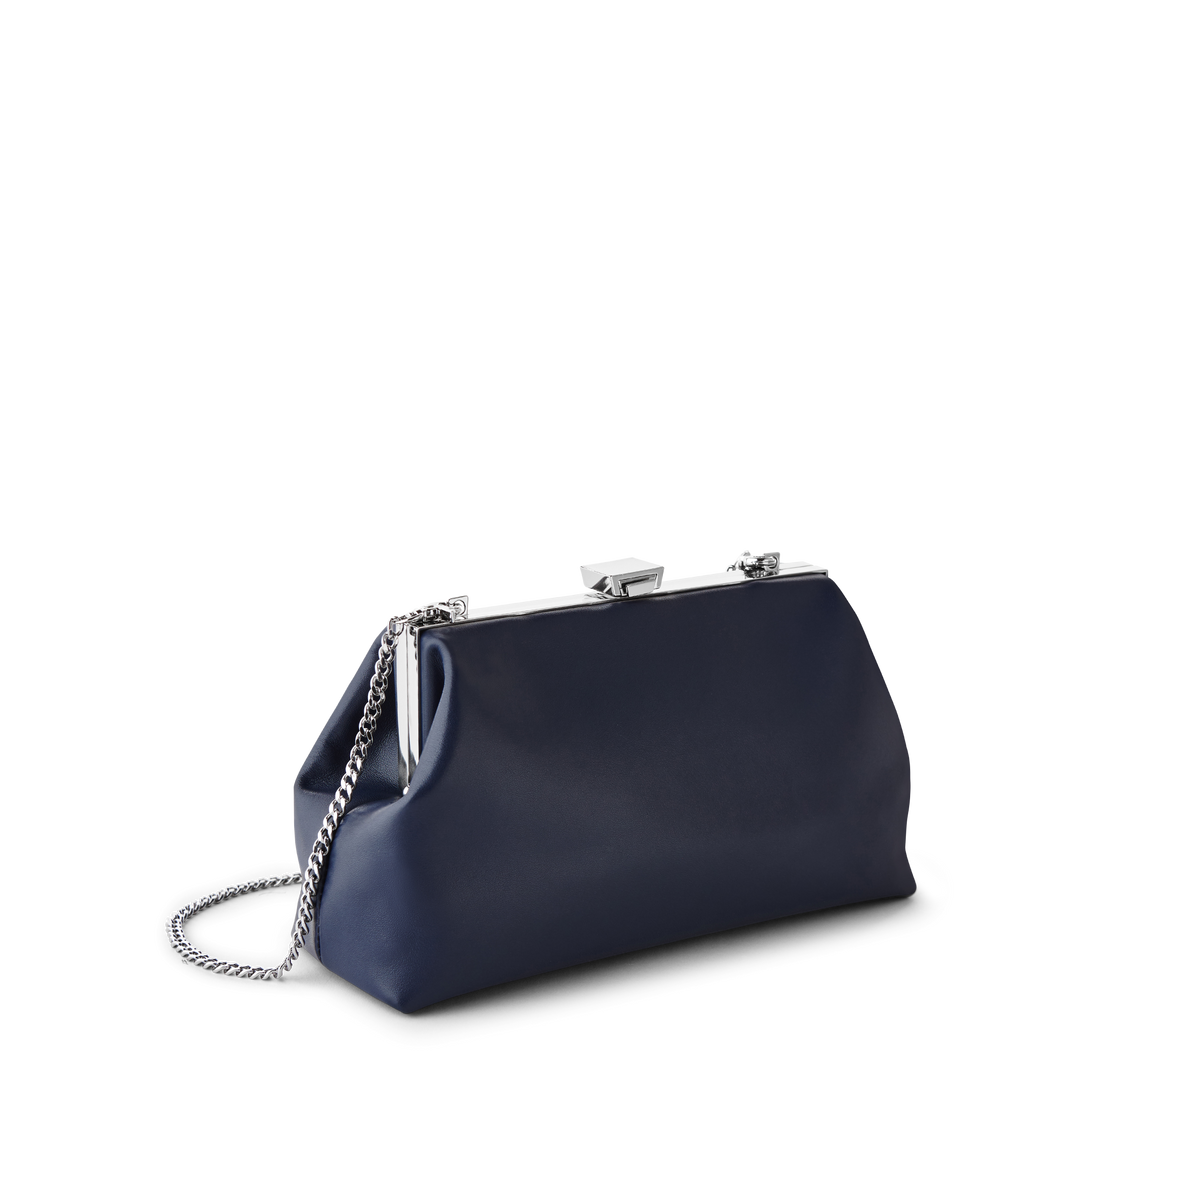 Midnight Leather Jewel Bag with Silver Chain Strap